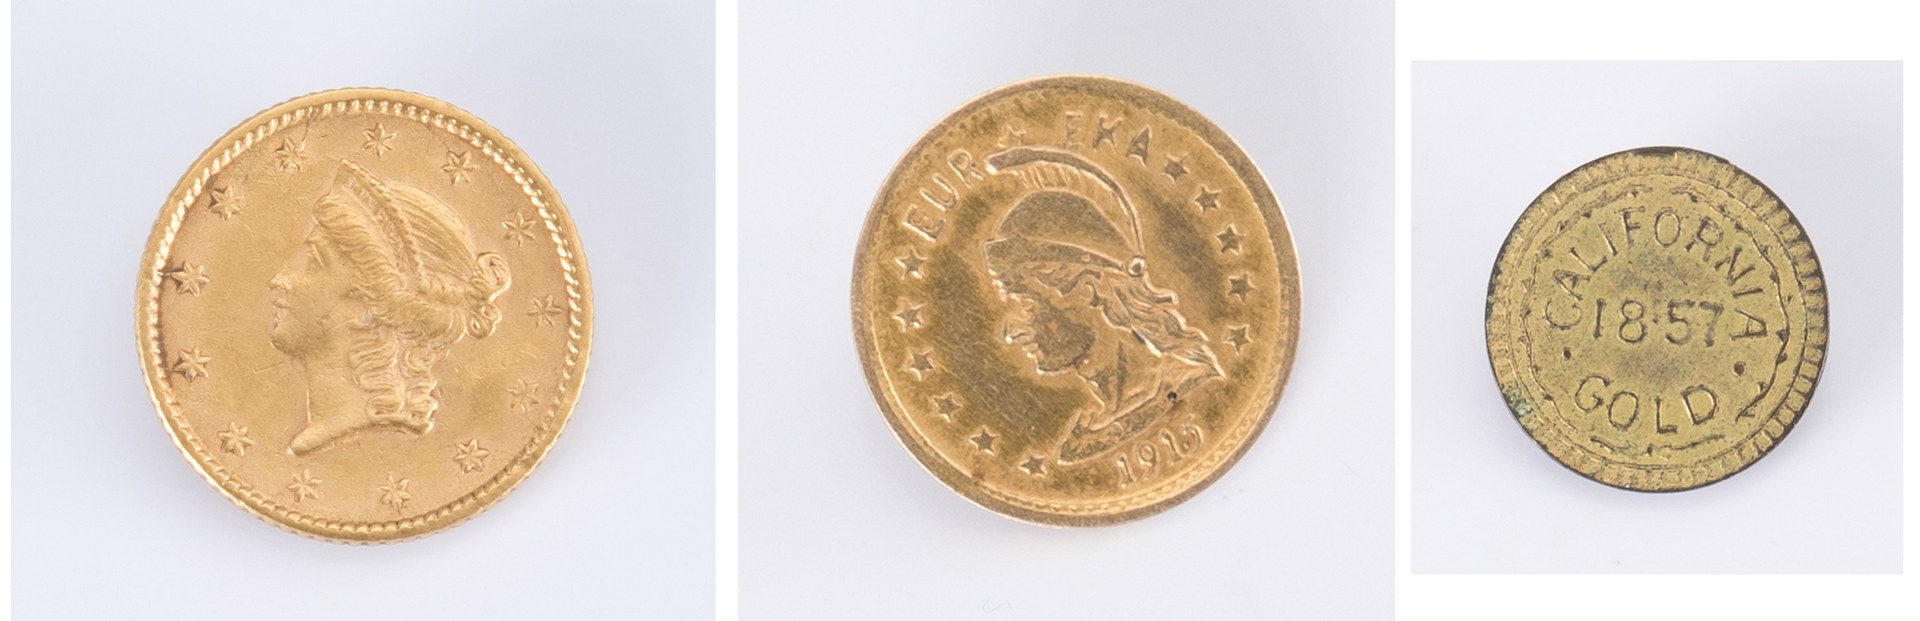 Lot 729: 3 Gold Rush Related Coins